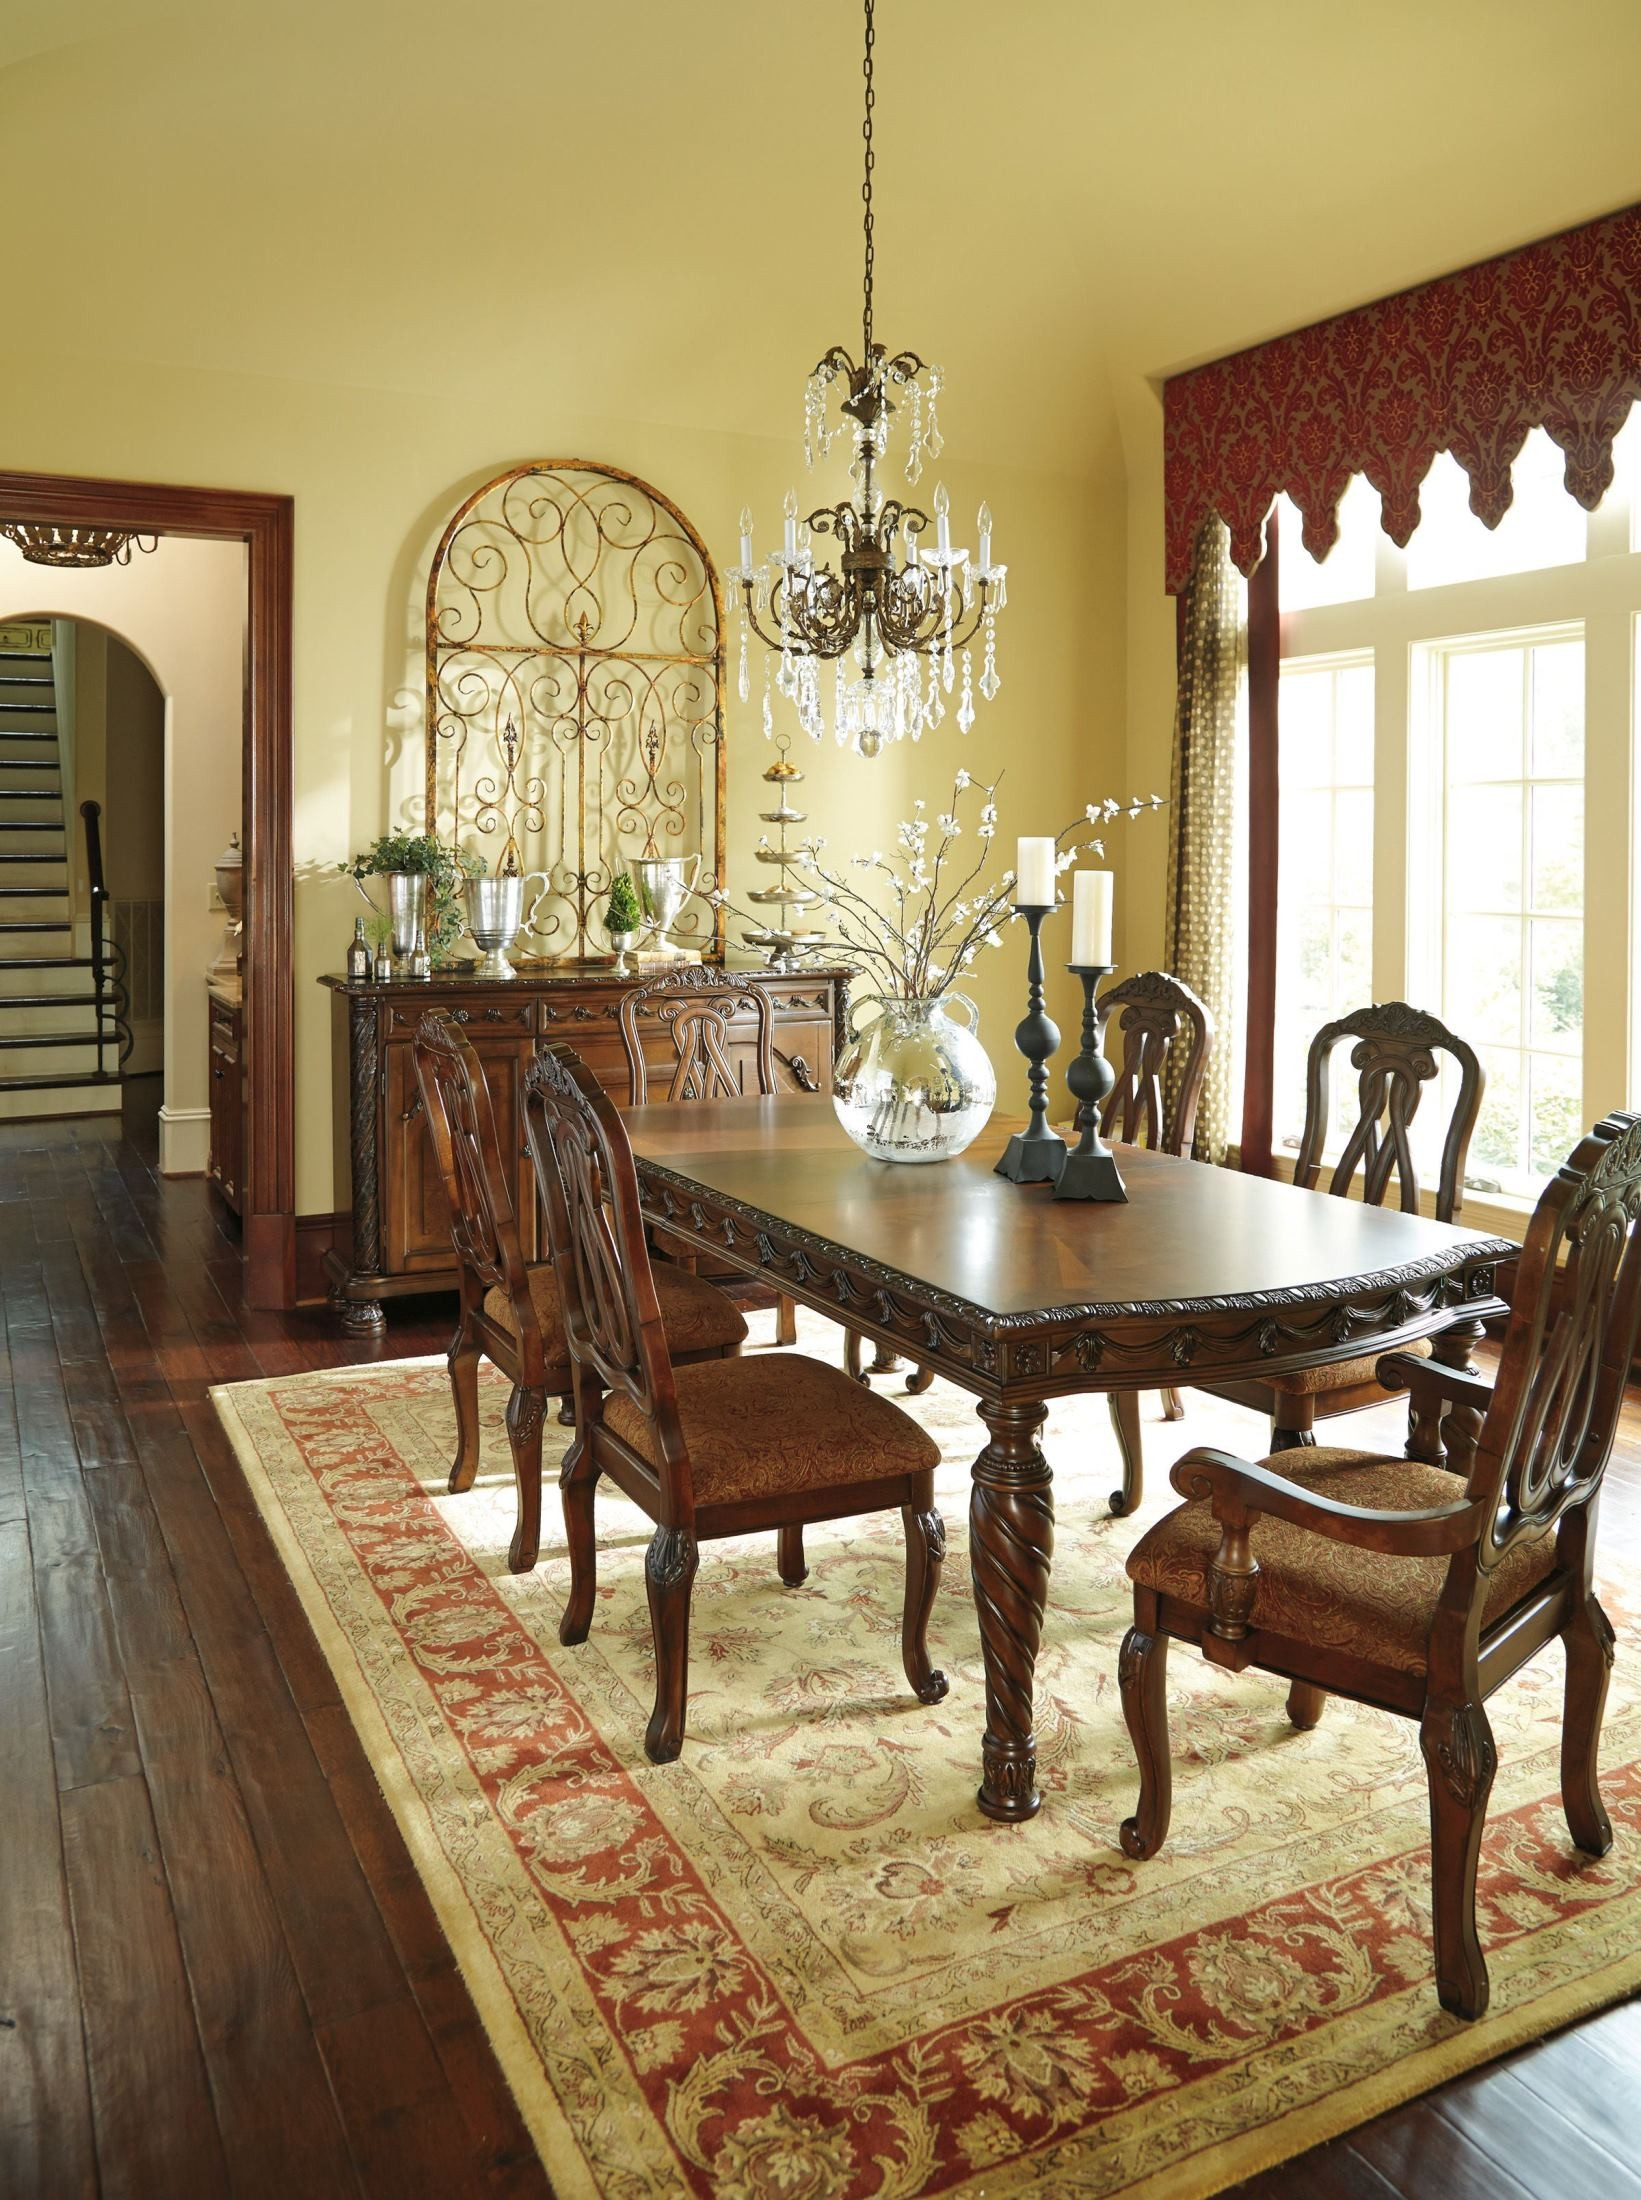 North Shore Rectangular Extendable Dining Room Set From Ashley D553 35 Coleman Furniture